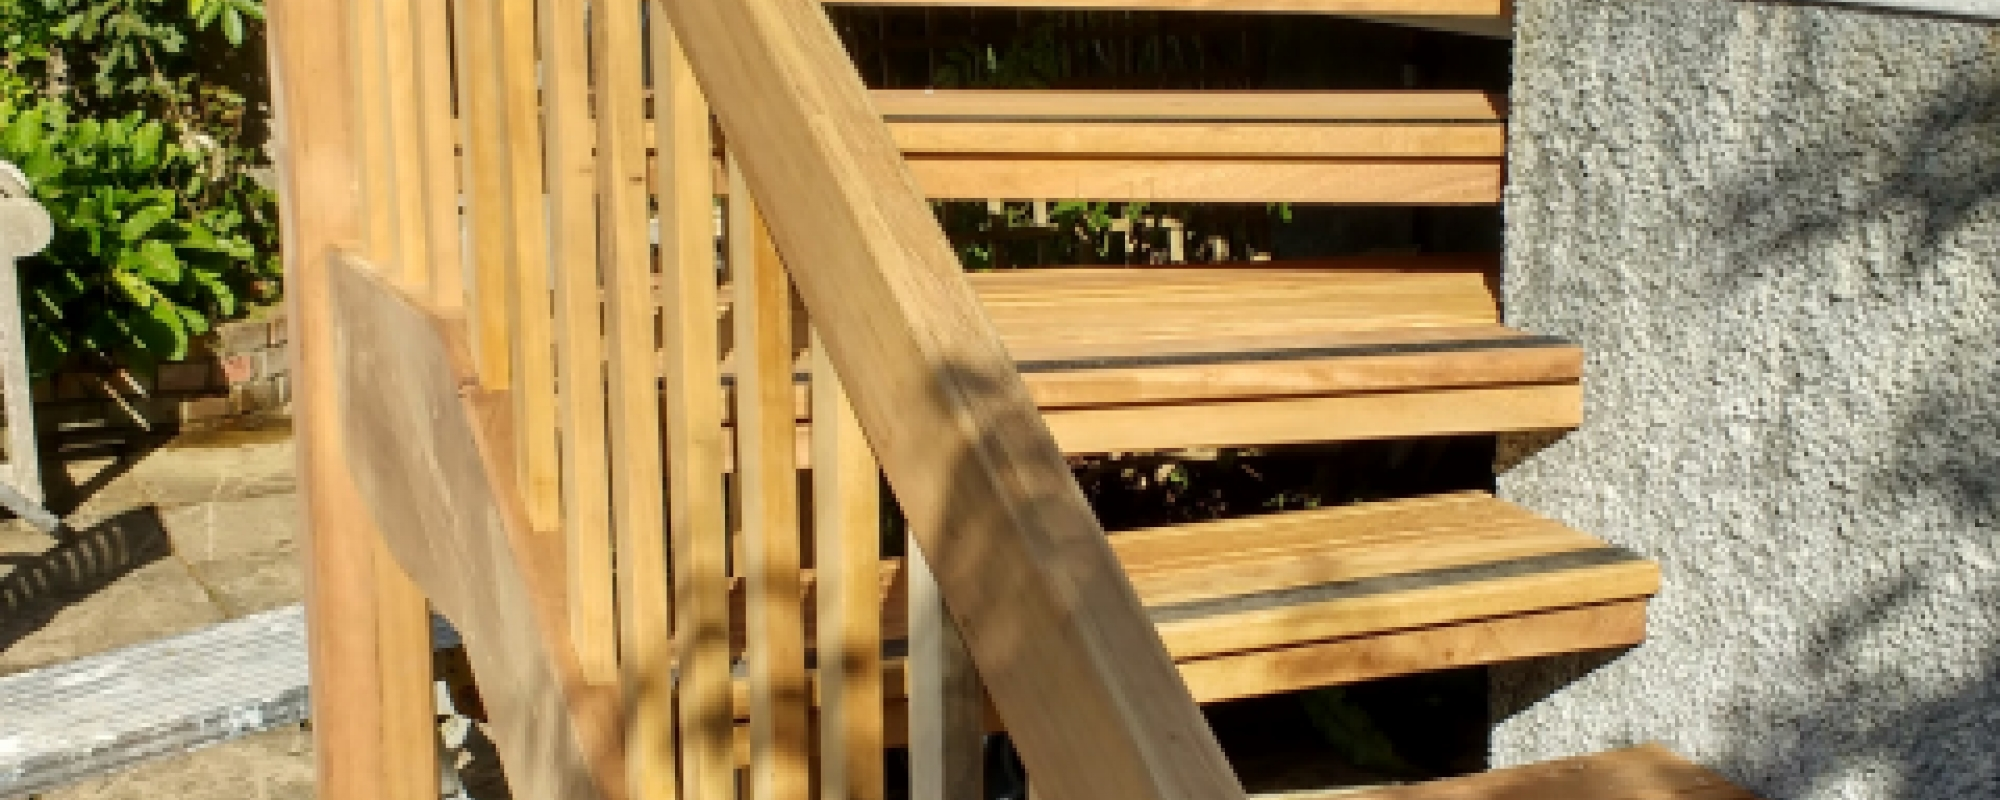 Timber steps